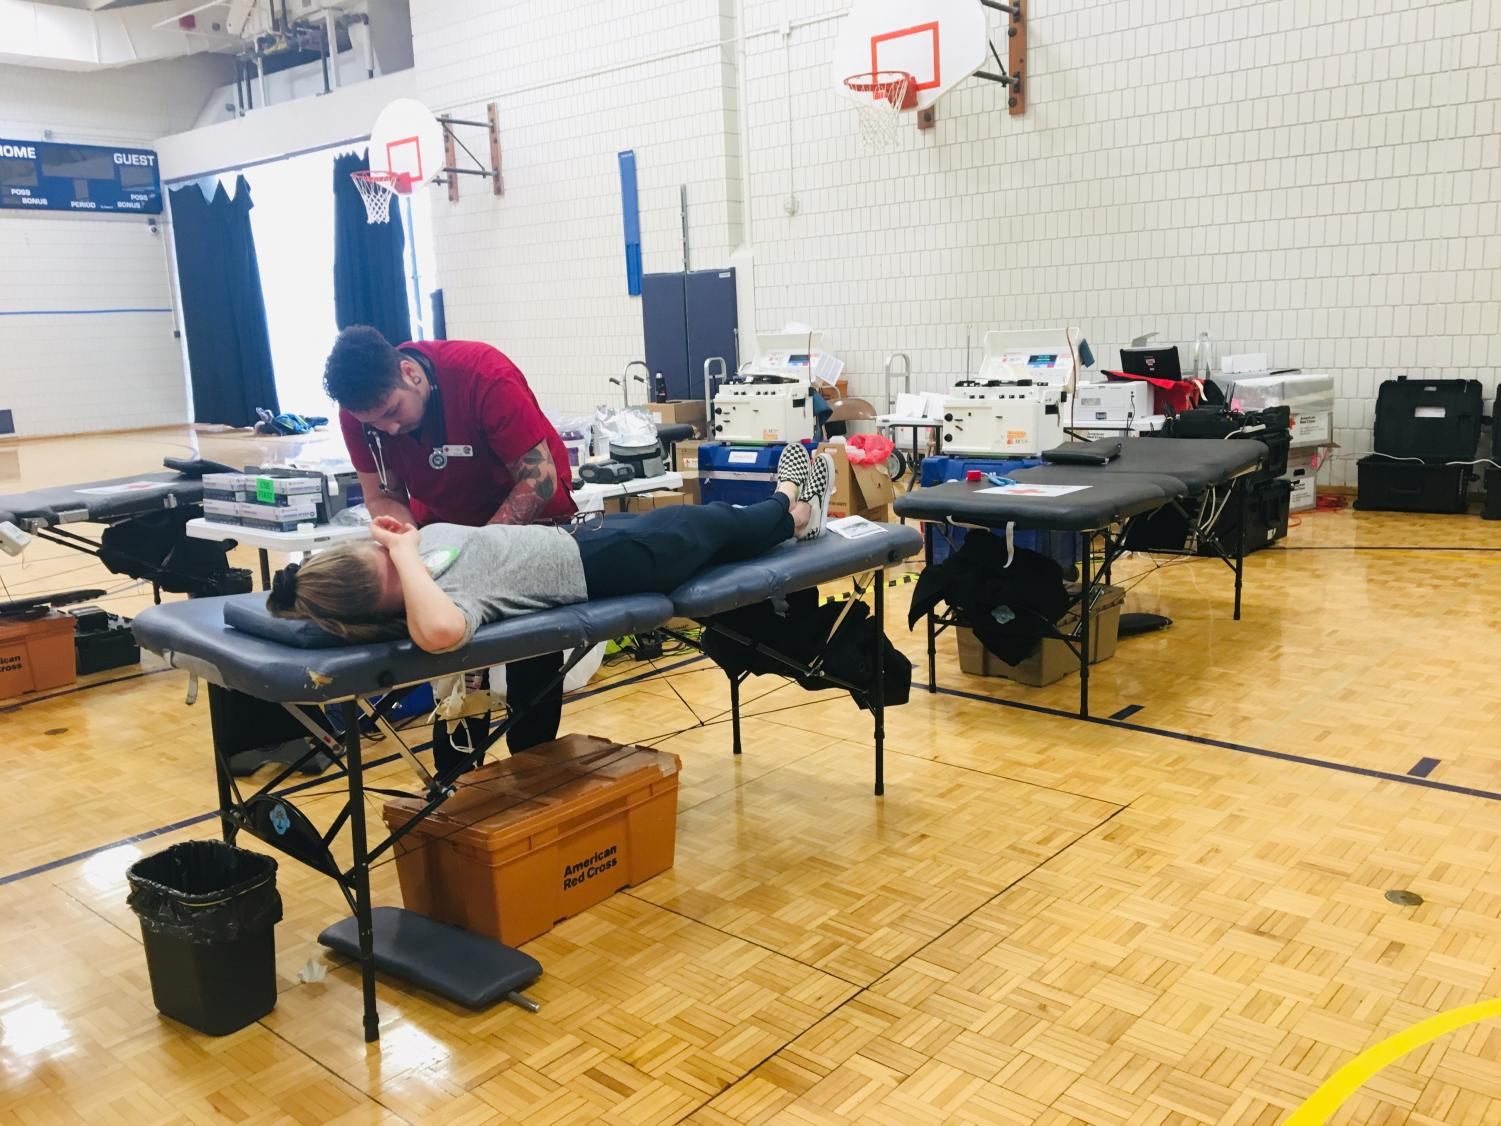 Students getting their blood drawn in the small gym